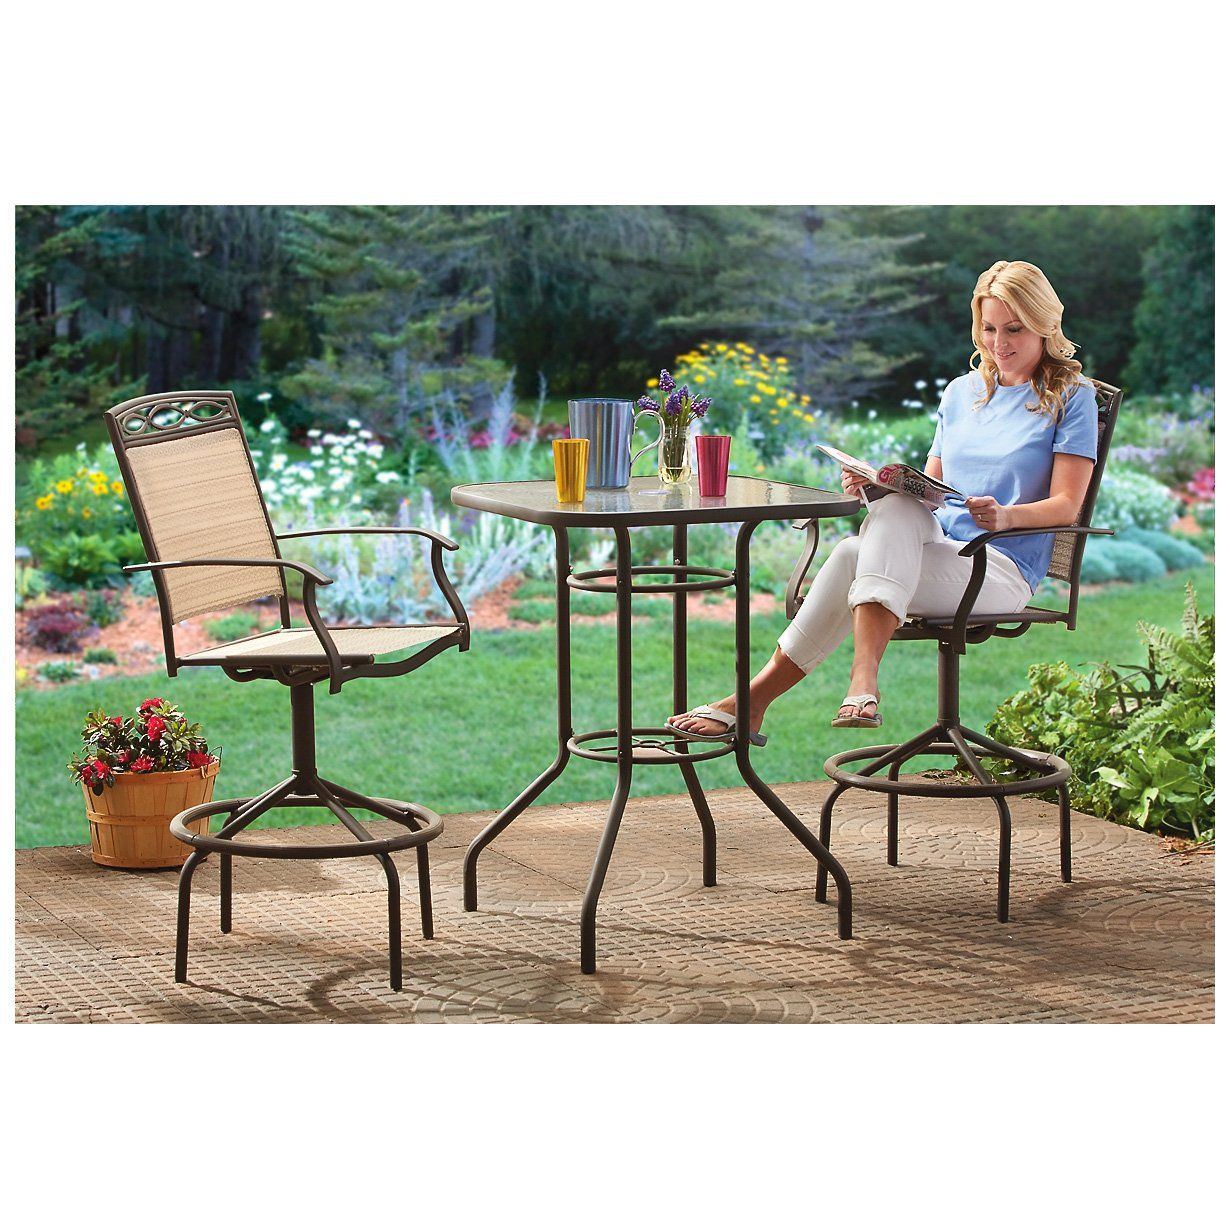 Amazon.com : CASTLECREEK Outdoor Patio Table U0026 Chairs Furniture Set, 3  Piece : Outdoor And Patio Furniture Sets : Garden U0026 Outdoor